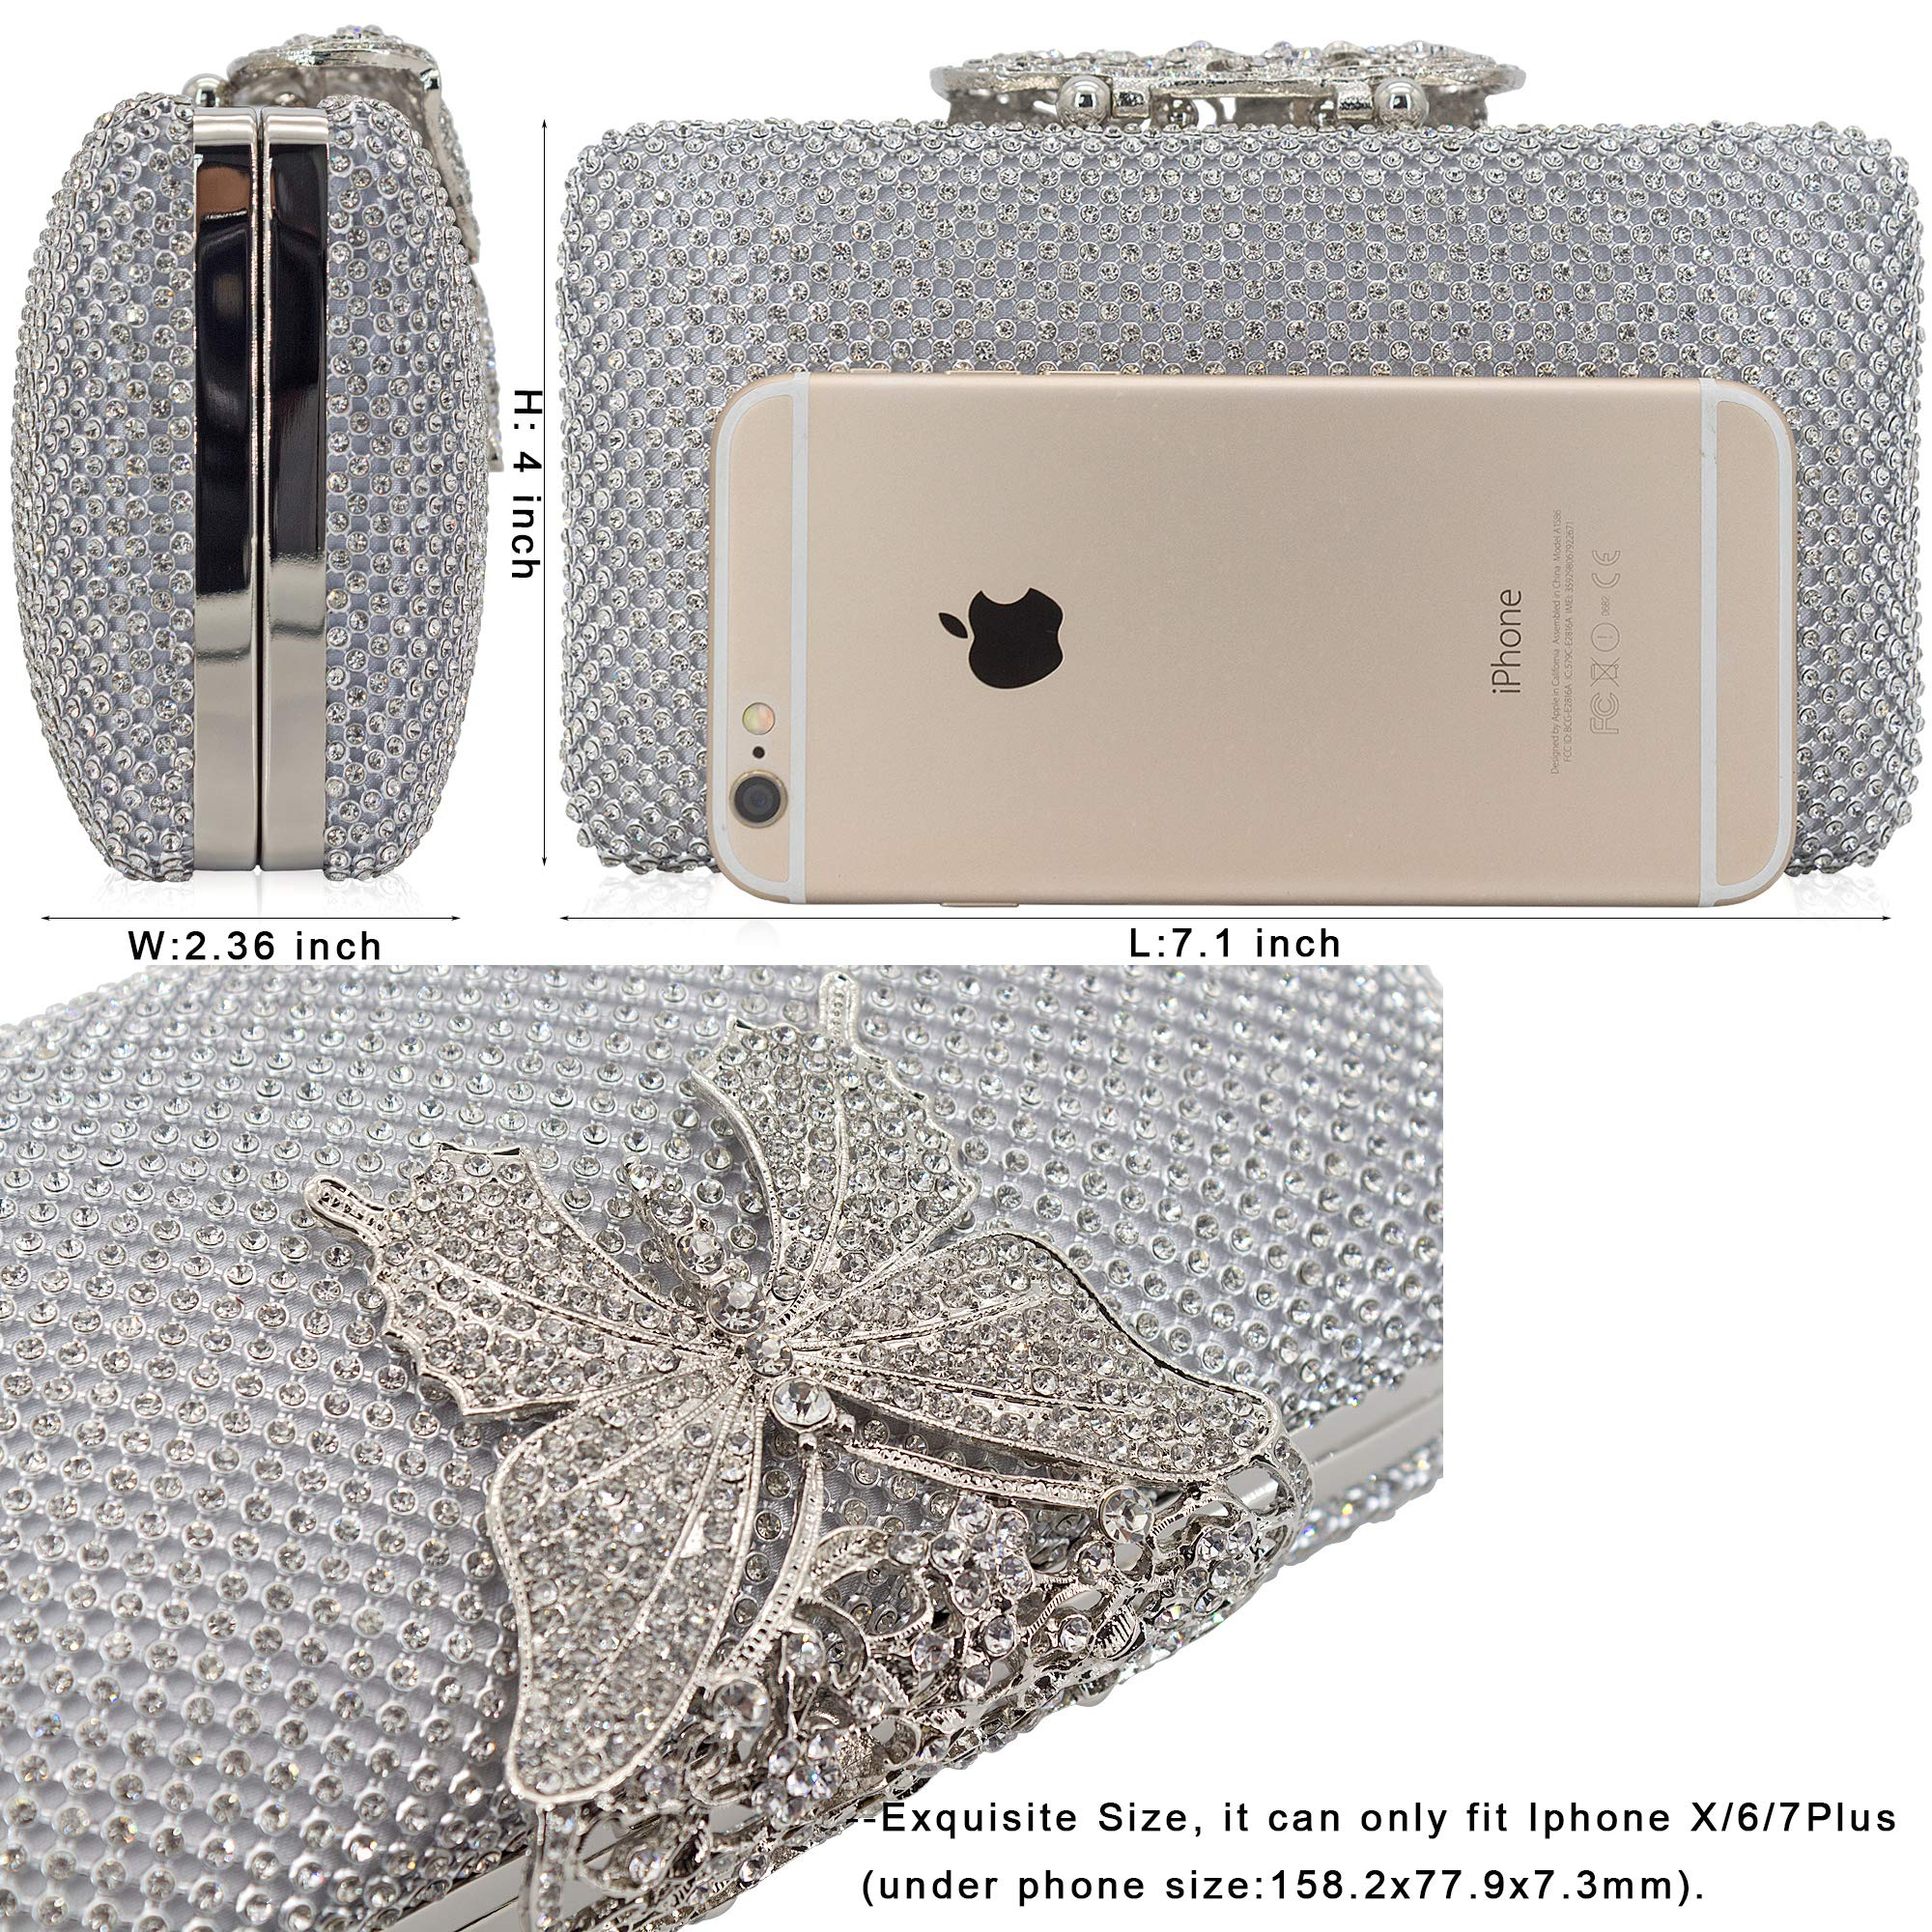 Dexmay Rhinestone Crystal Clutch Purse Butterfly Clasp Women Evening Bag for Formal Party Silver by DEXMAY DM (Image #4)